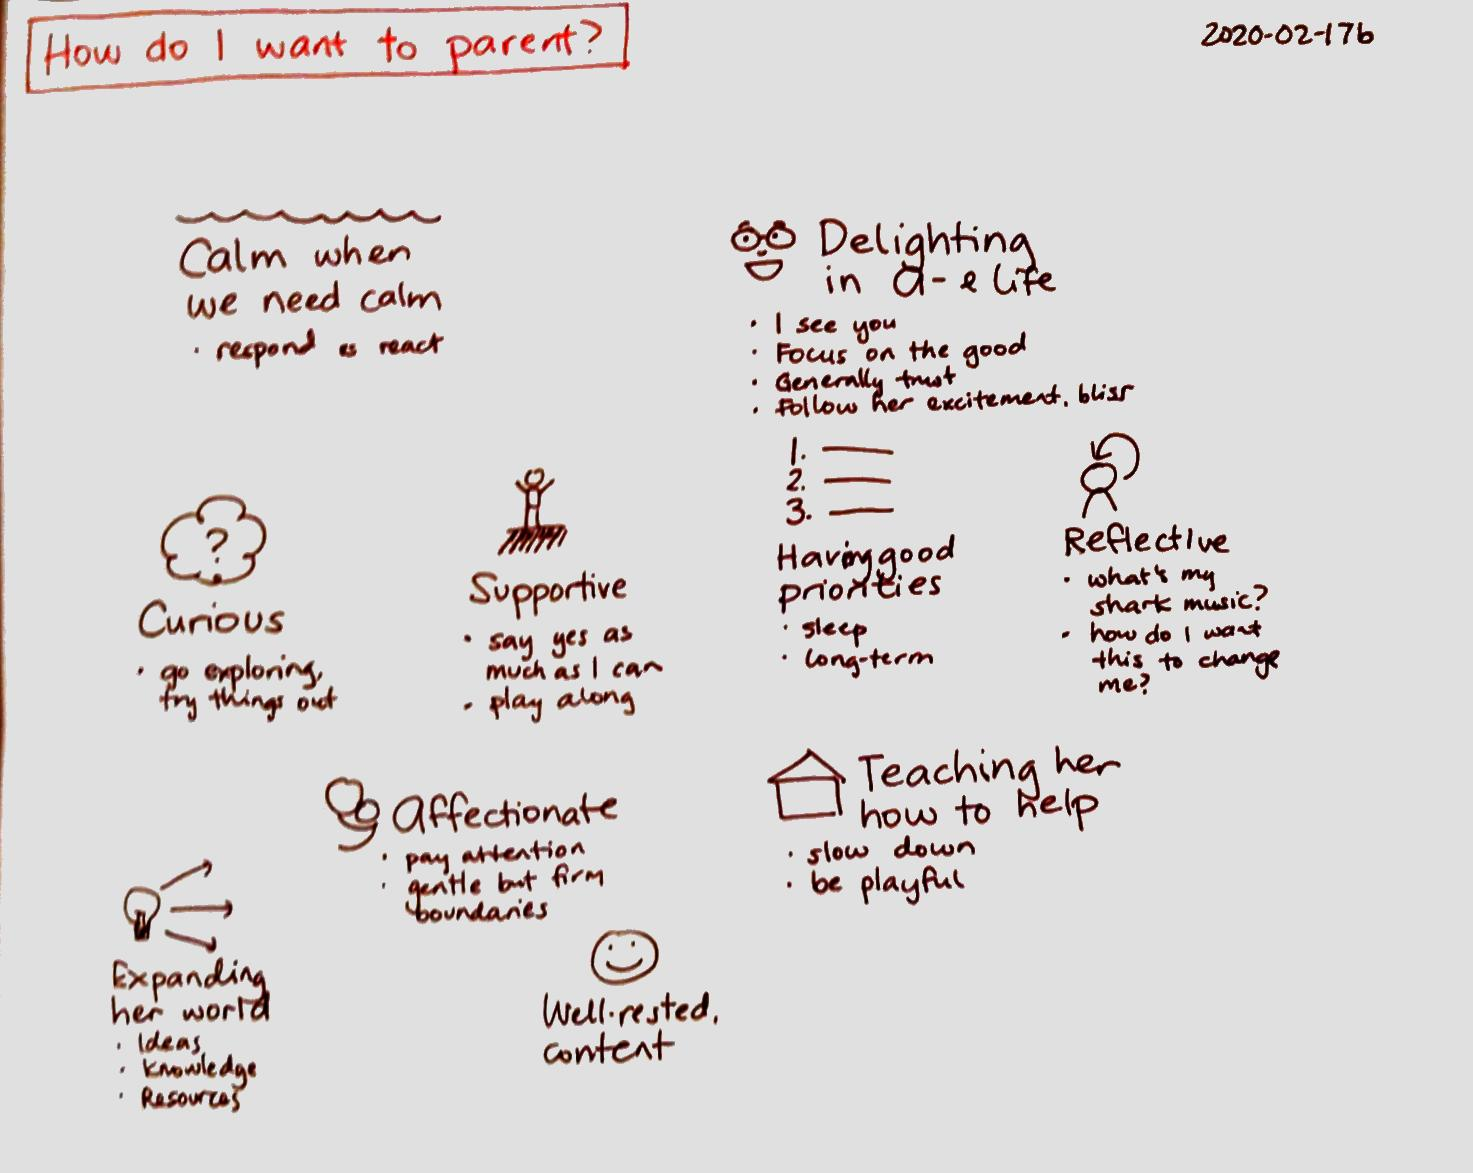 2020-02-17b How do I want to parent #parenting.jpg